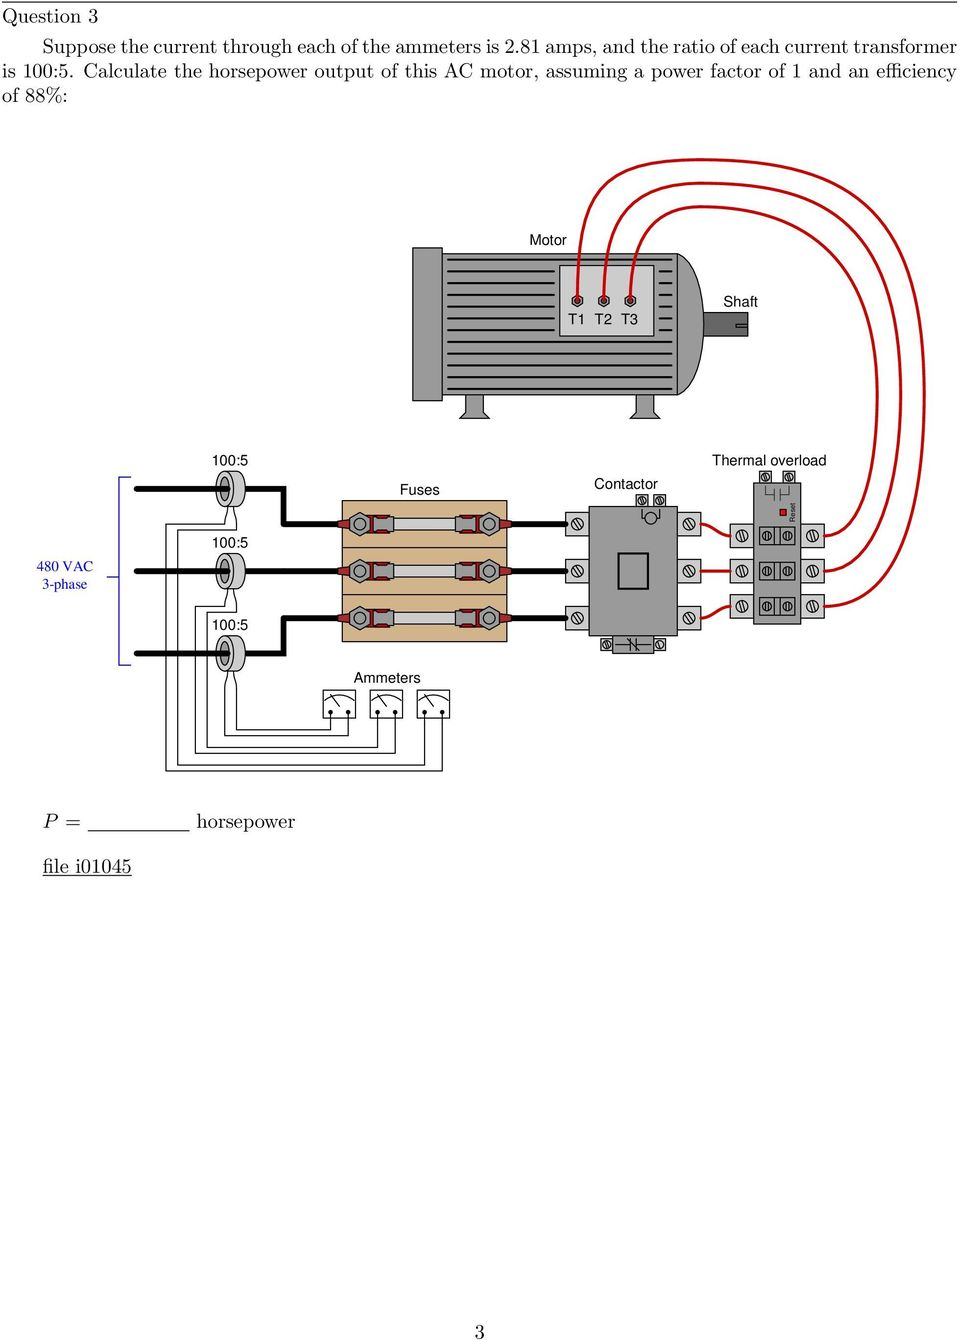 Three Phase Ac Circuits Pdf Ammeter Circuit Calculate The Horsepower Output Of This Motor Assuming A Power Factor 1 And